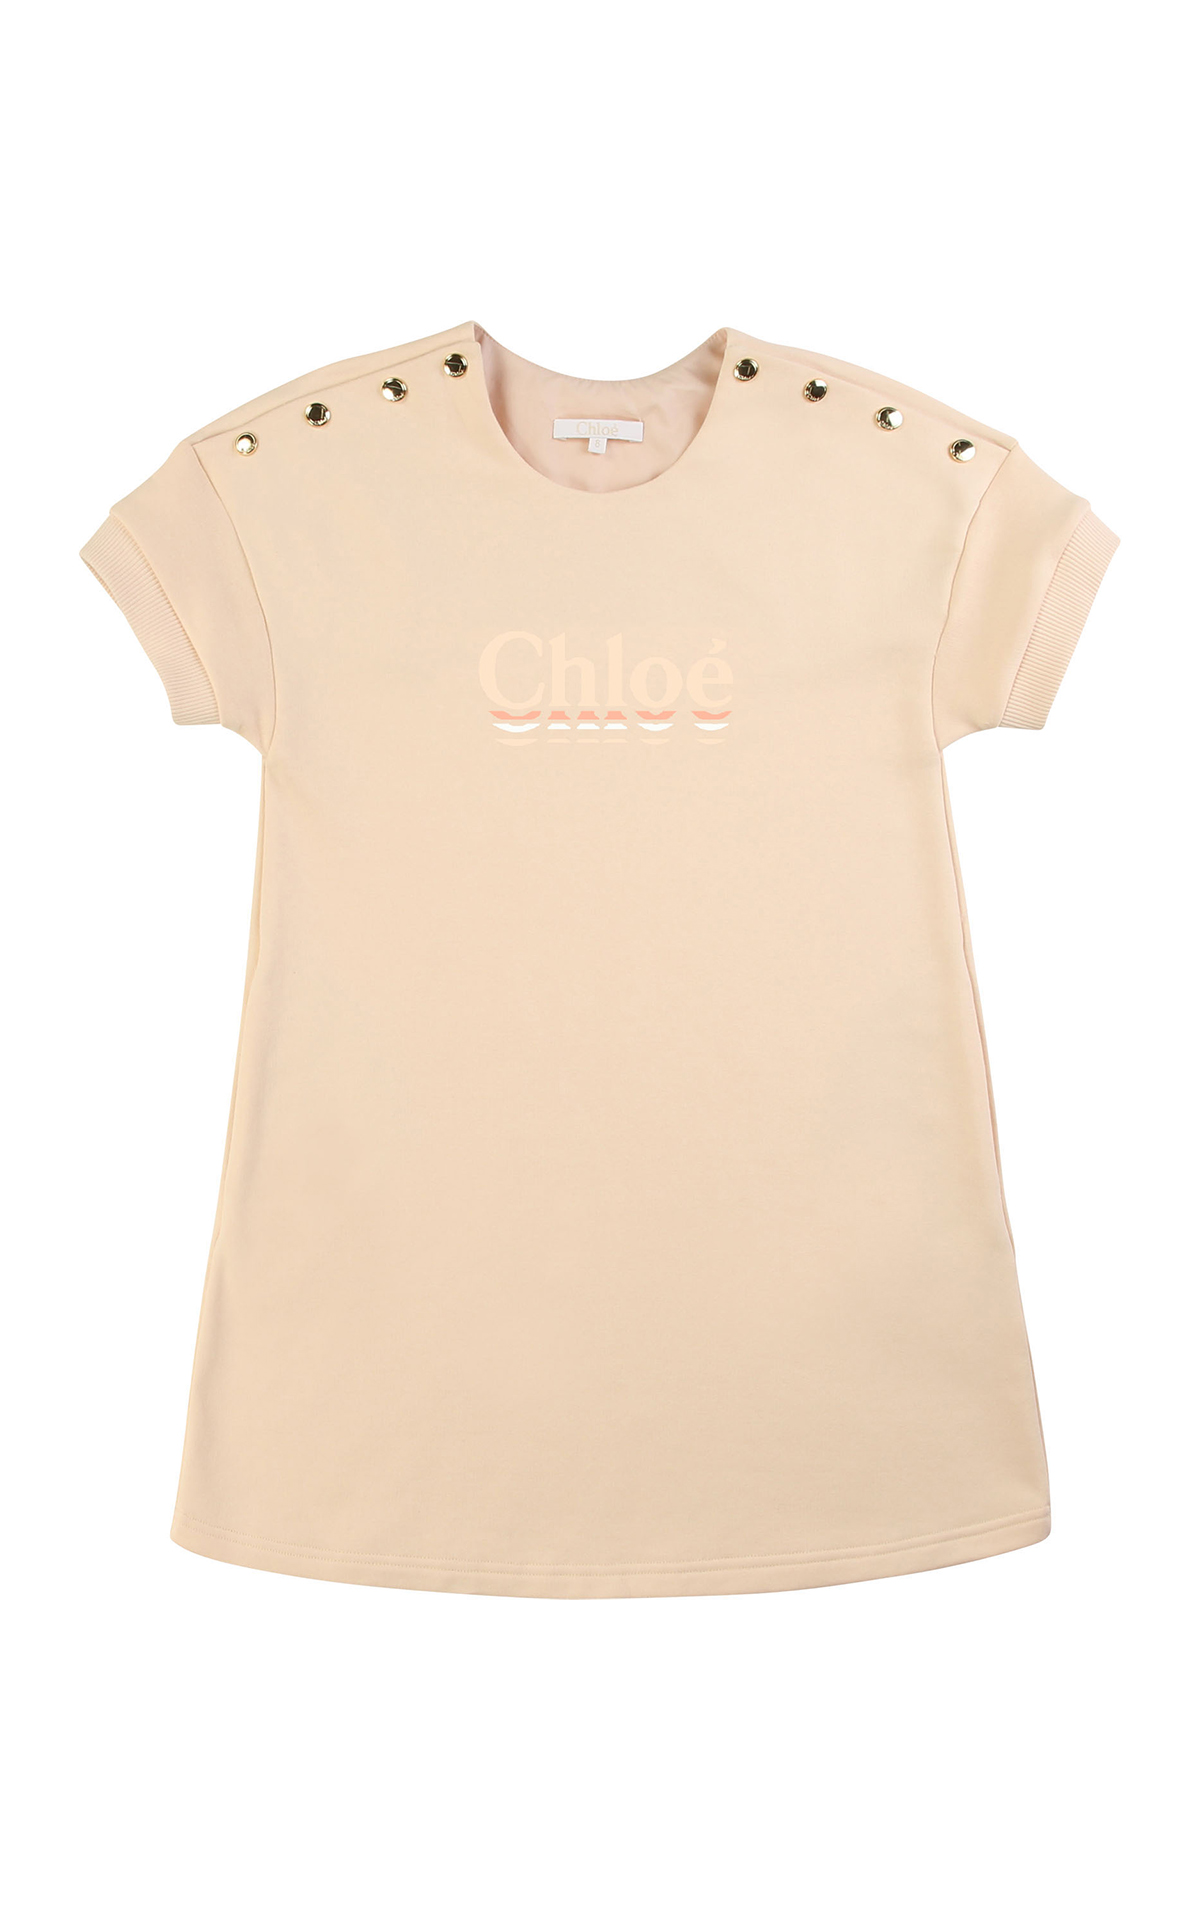 Vestido color crema de Chloé Kids Around